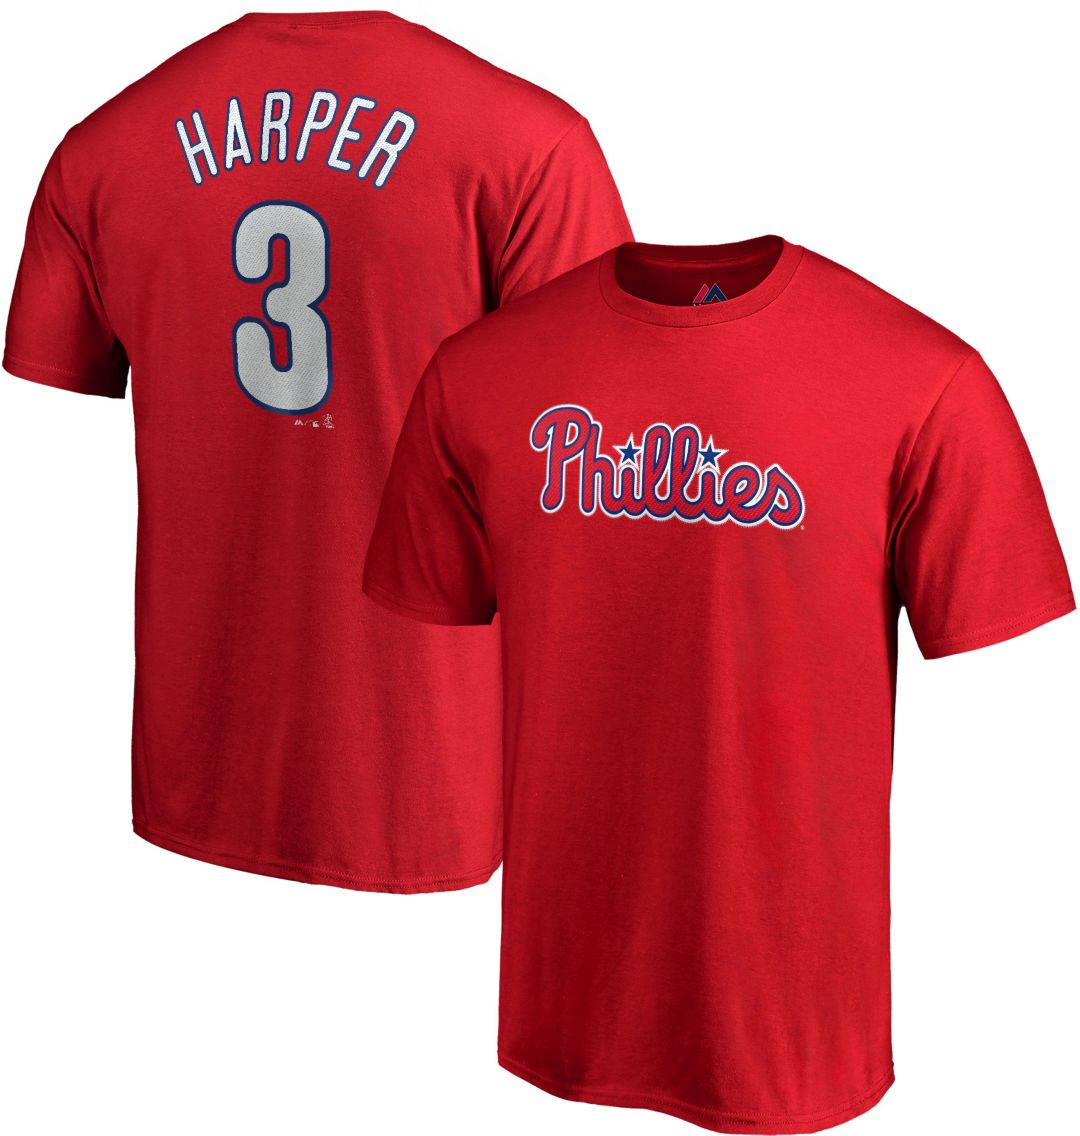 new concept 430d3 a9dde Majestic Youth Philadelphia Phillies Bryce Harper #3 Red T-Shirt